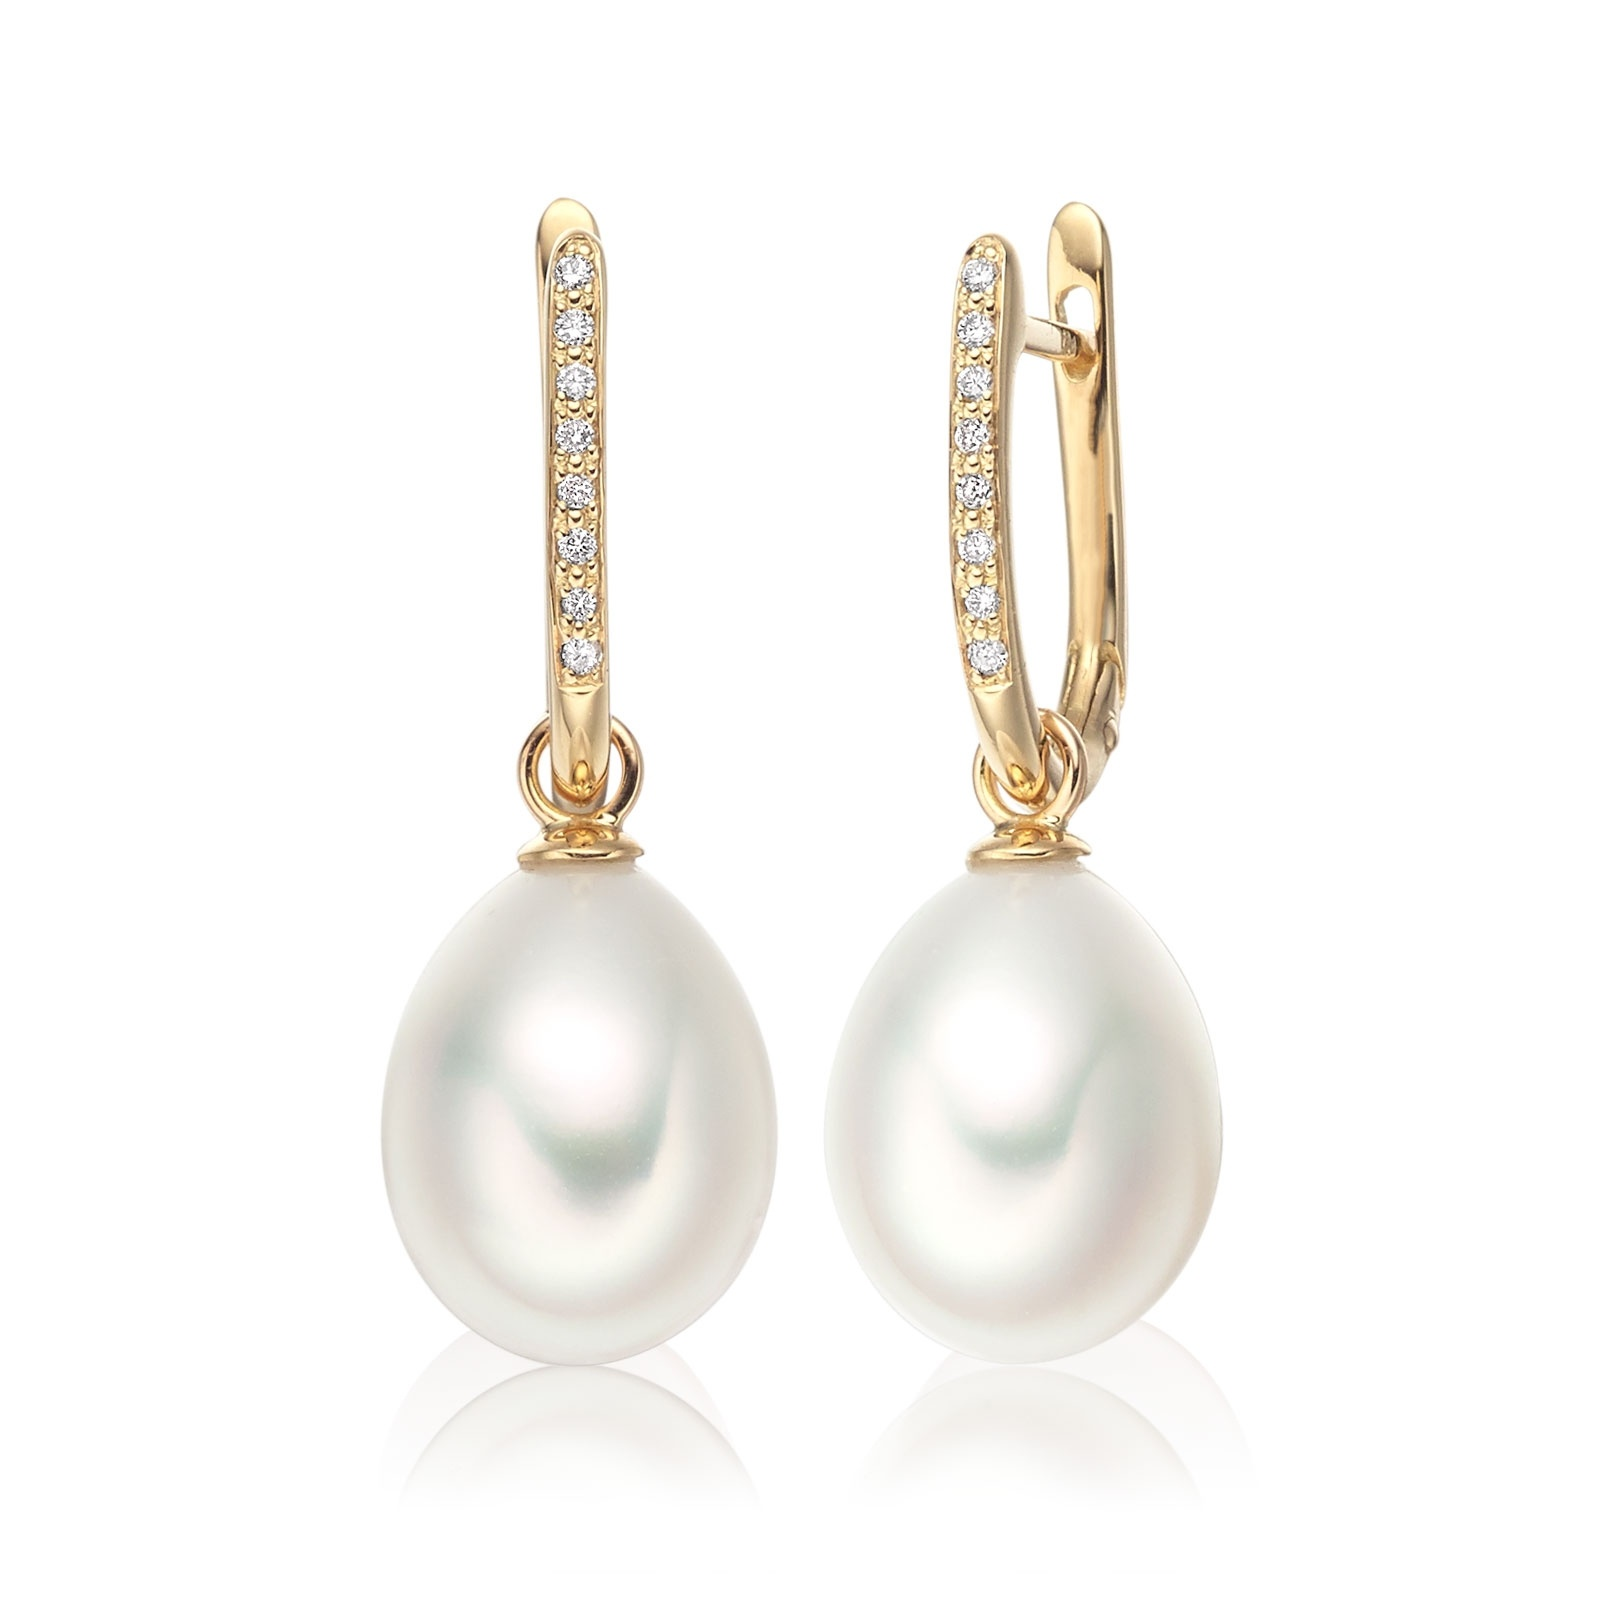 Yellow Gold Diamond Leverbacks with White Freshwater Pearls-FEWDYG0273-1